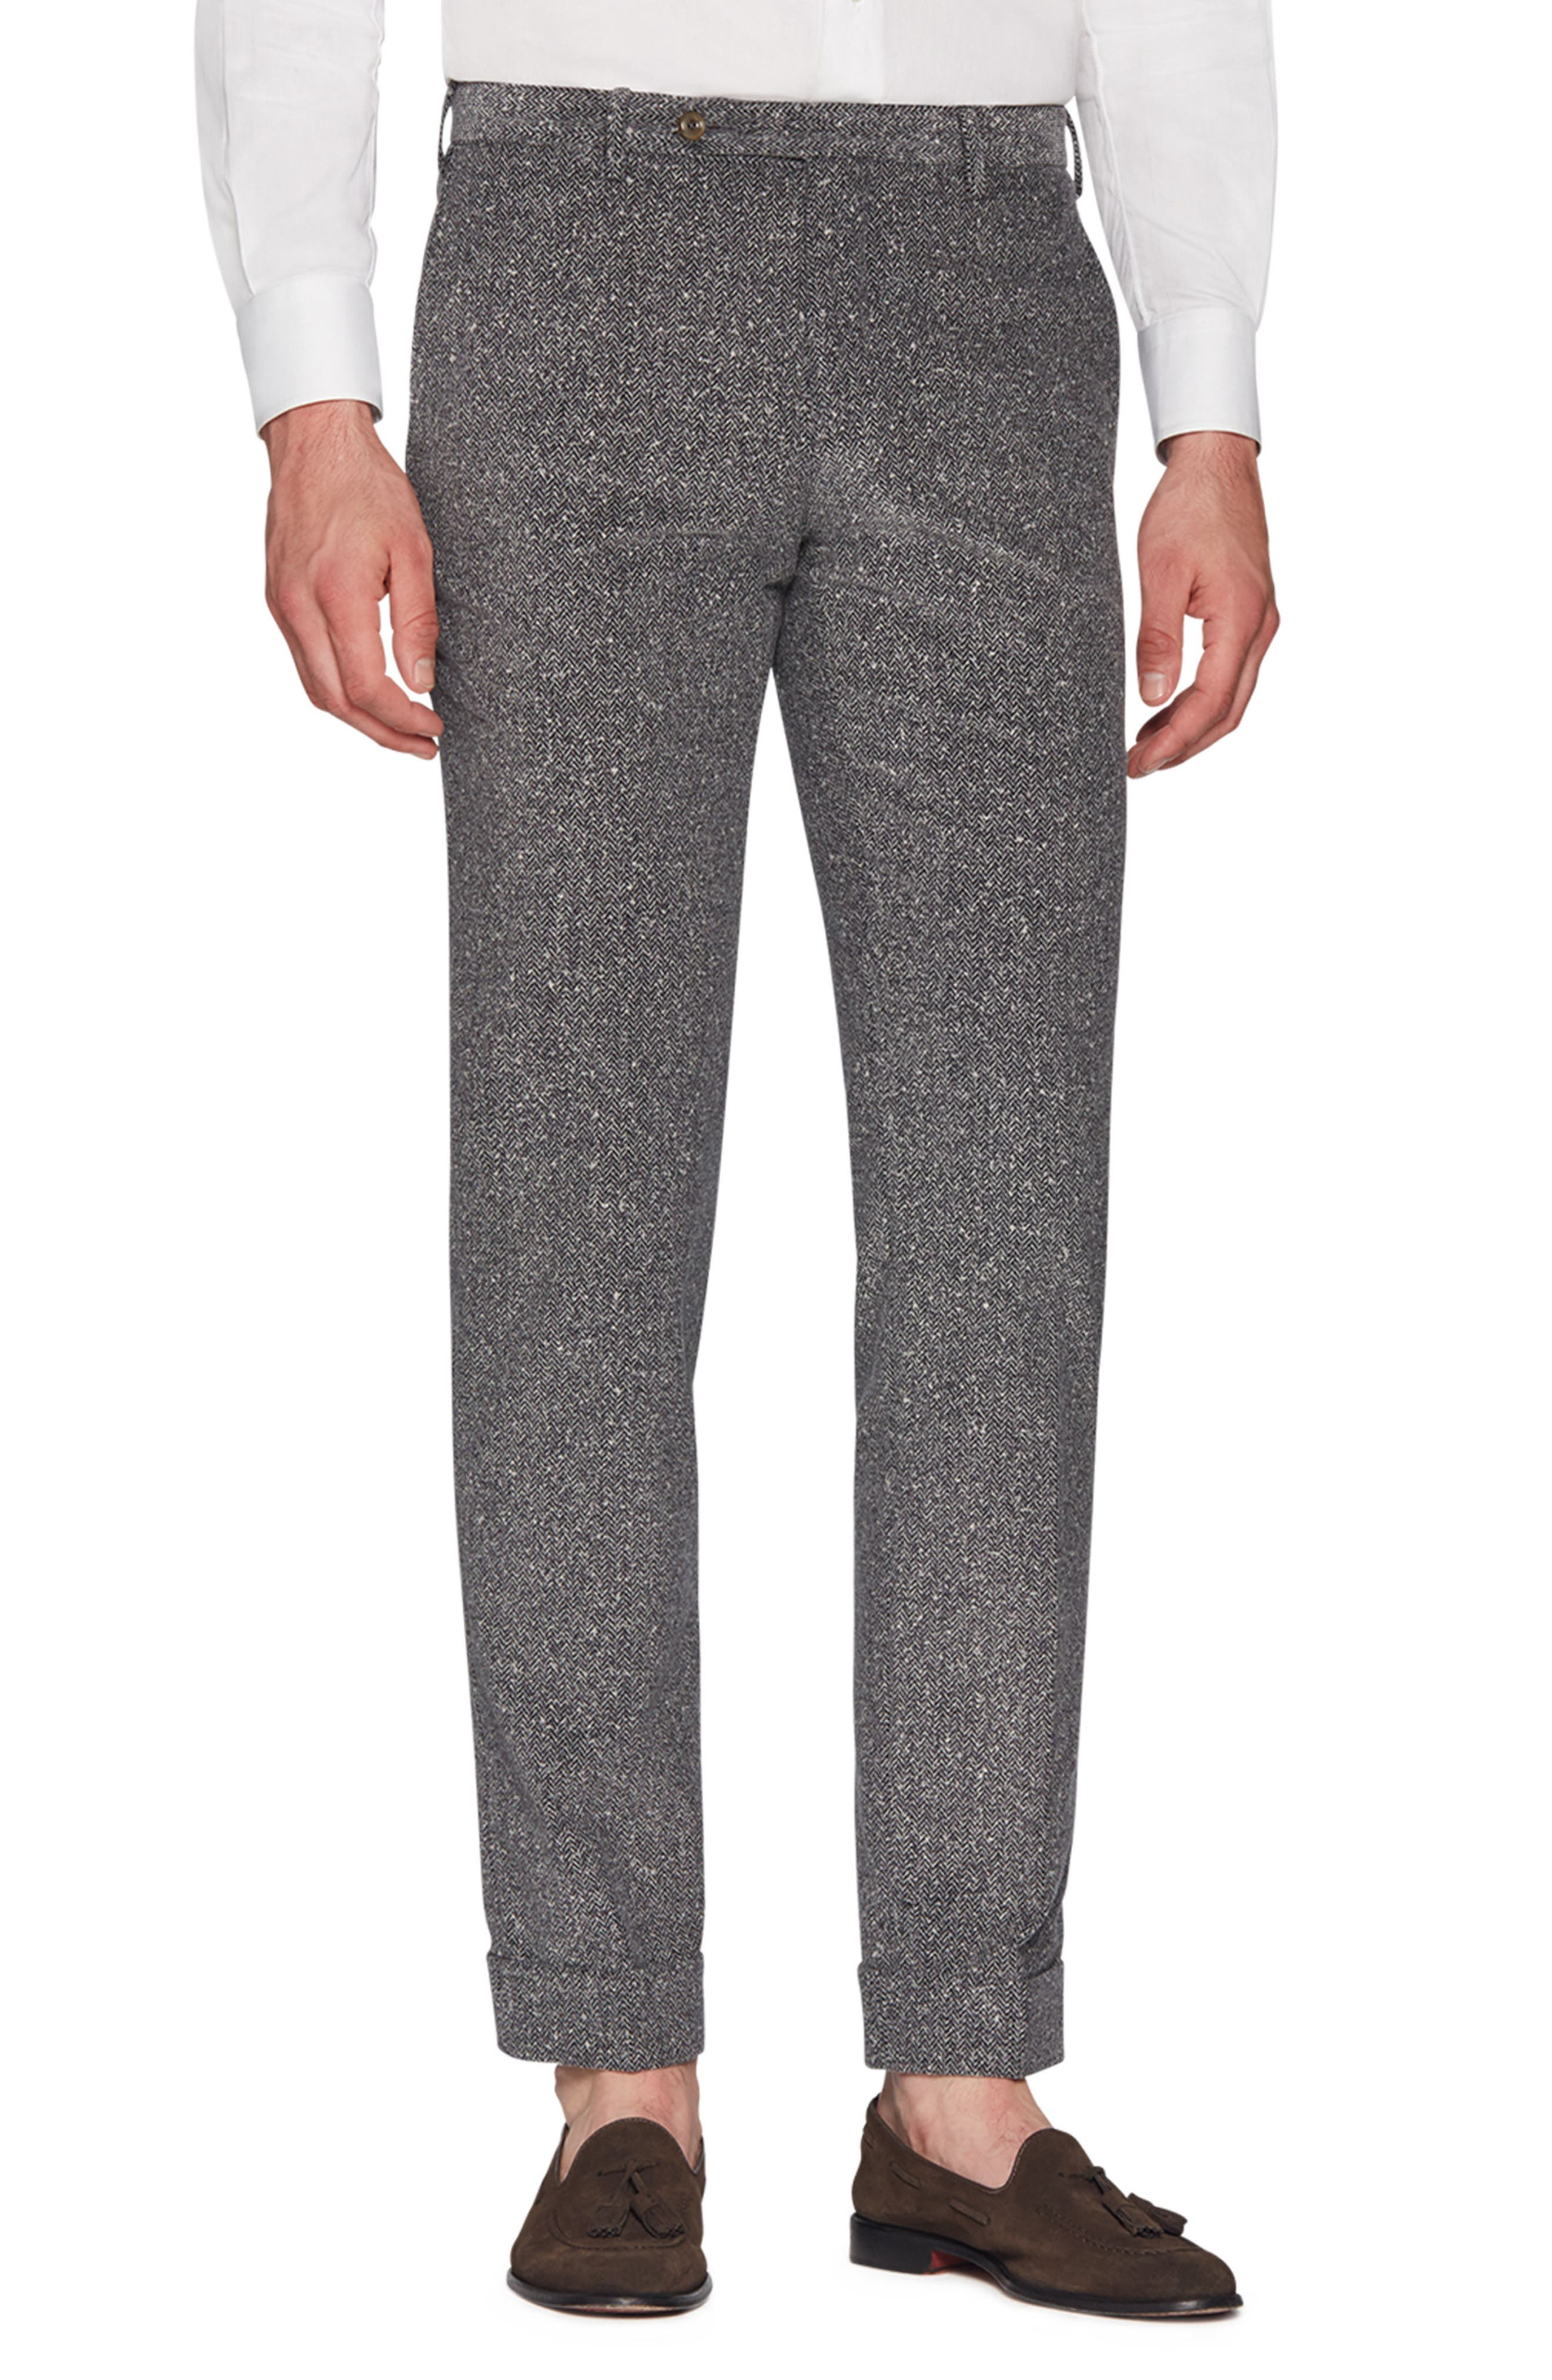 Curtis Flat Front Herringbone Cotton Trousers,                             Main thumbnail 1, color,                             MID GREY